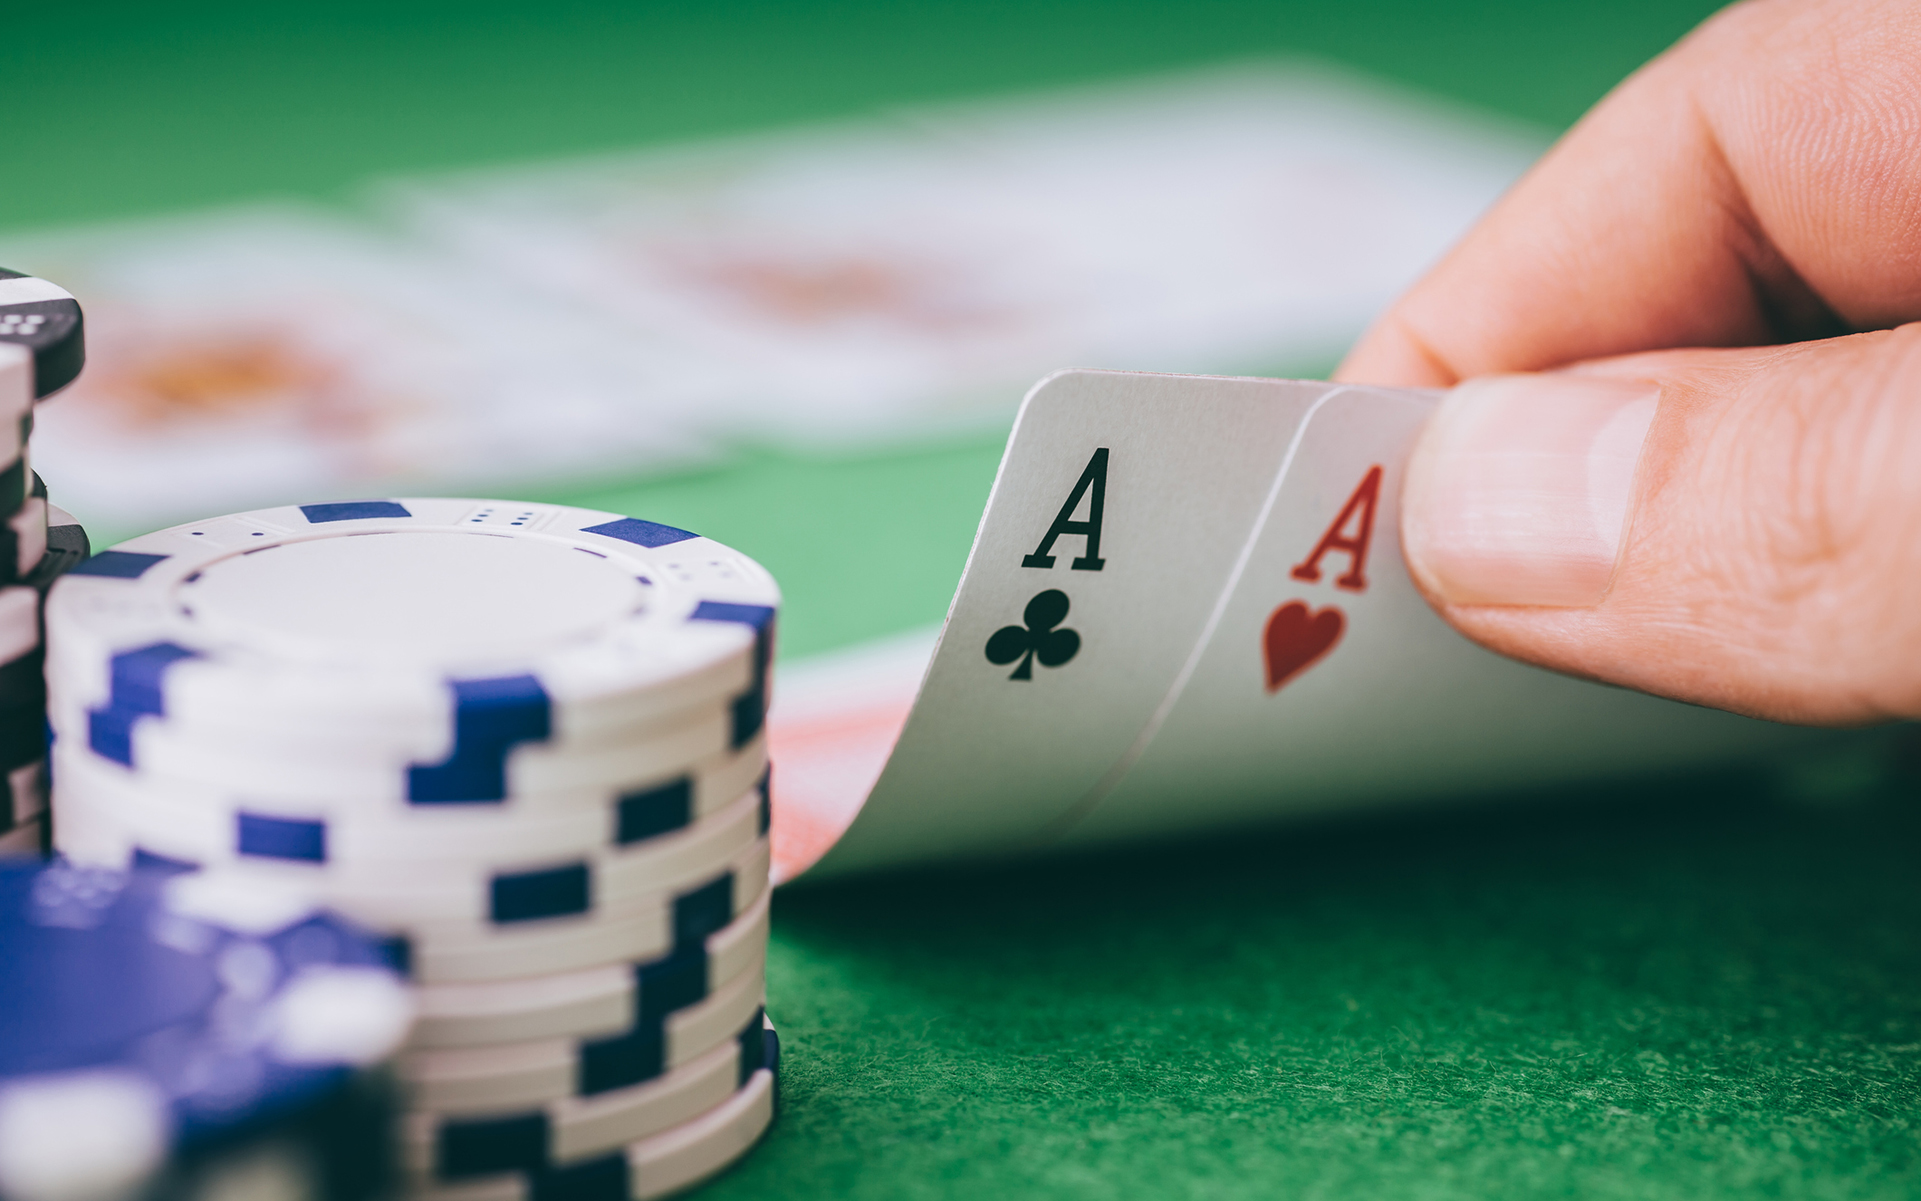 Key Tactics The professional's Use For Online Casino